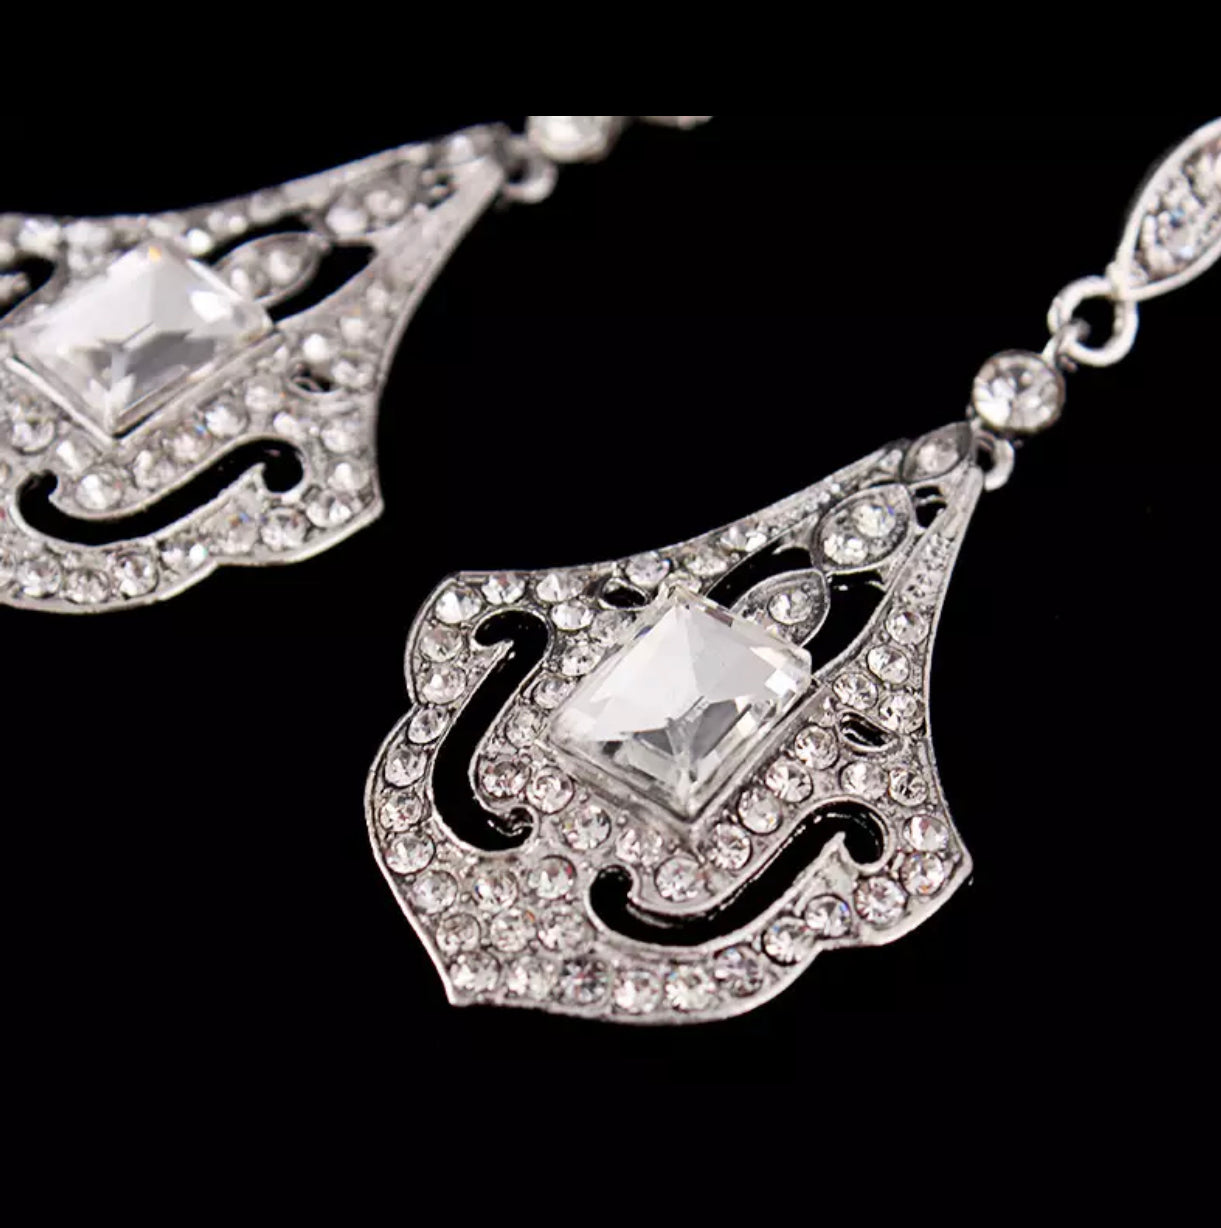 Art Deco - Crystal rhinestone drop earrings